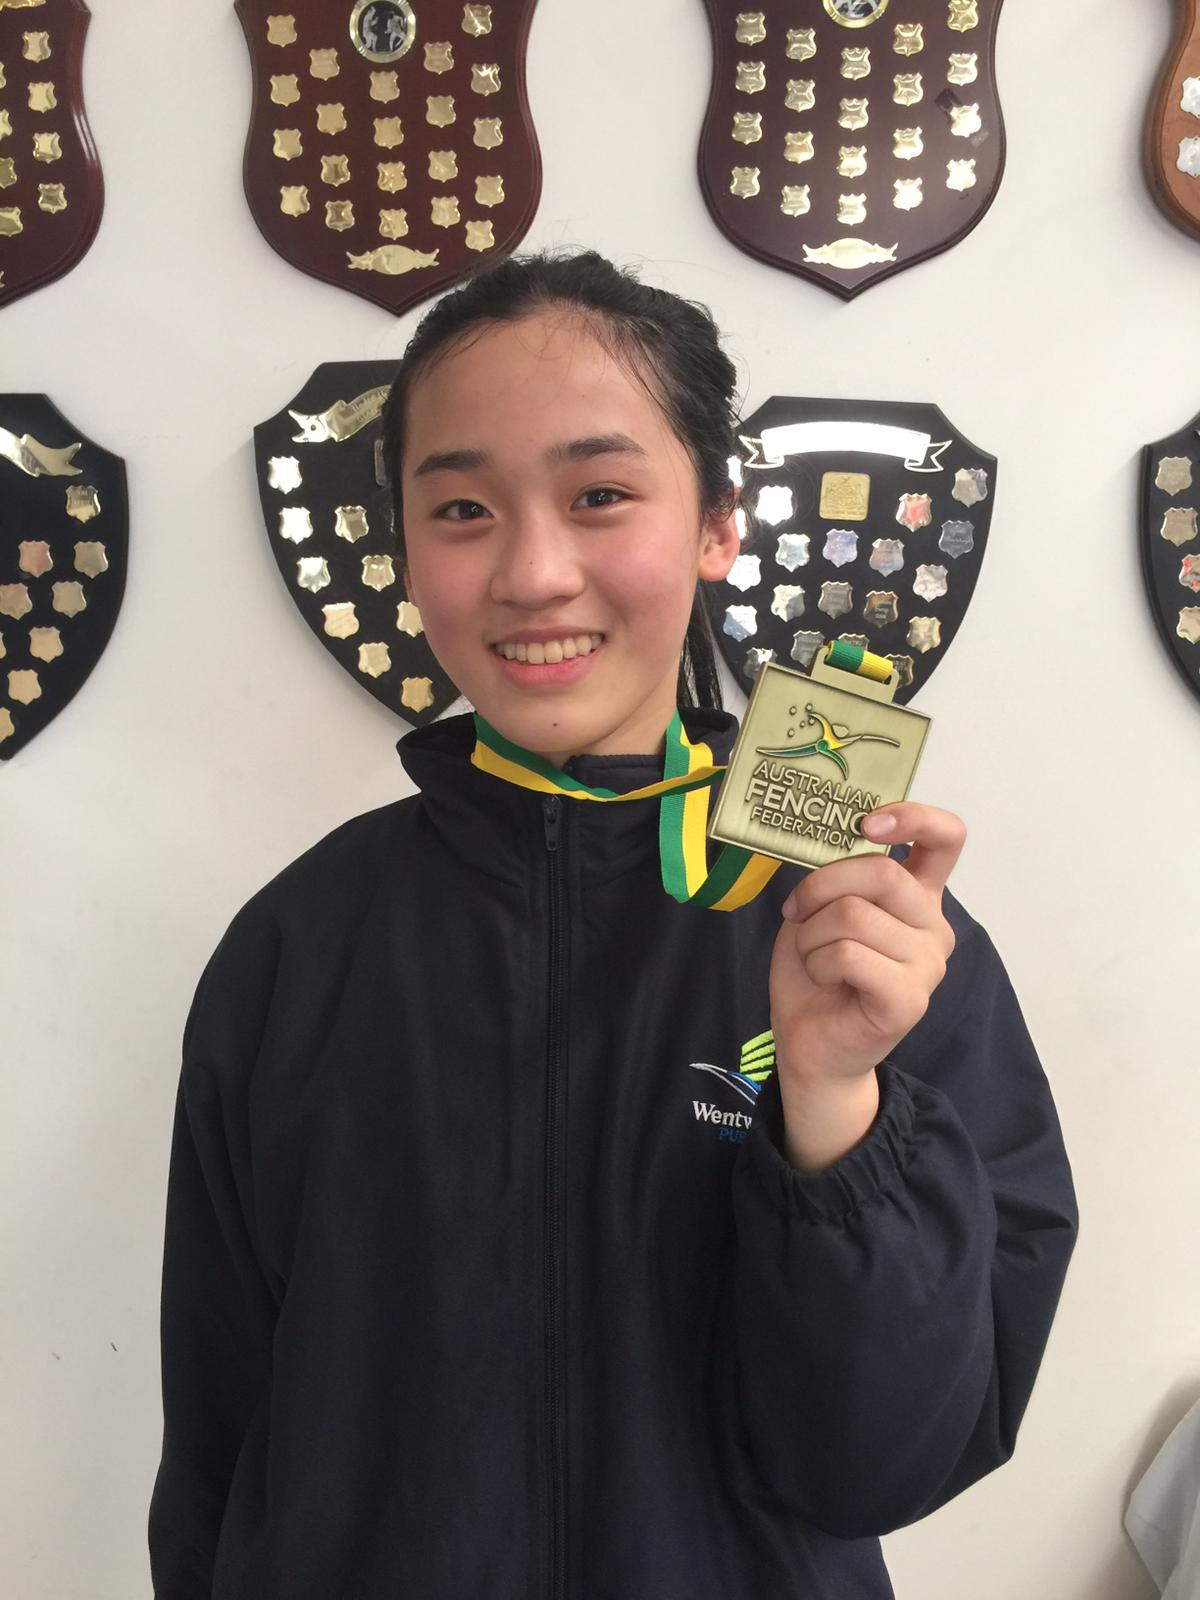 Qixuan Sun, Wentworth Public School NSW